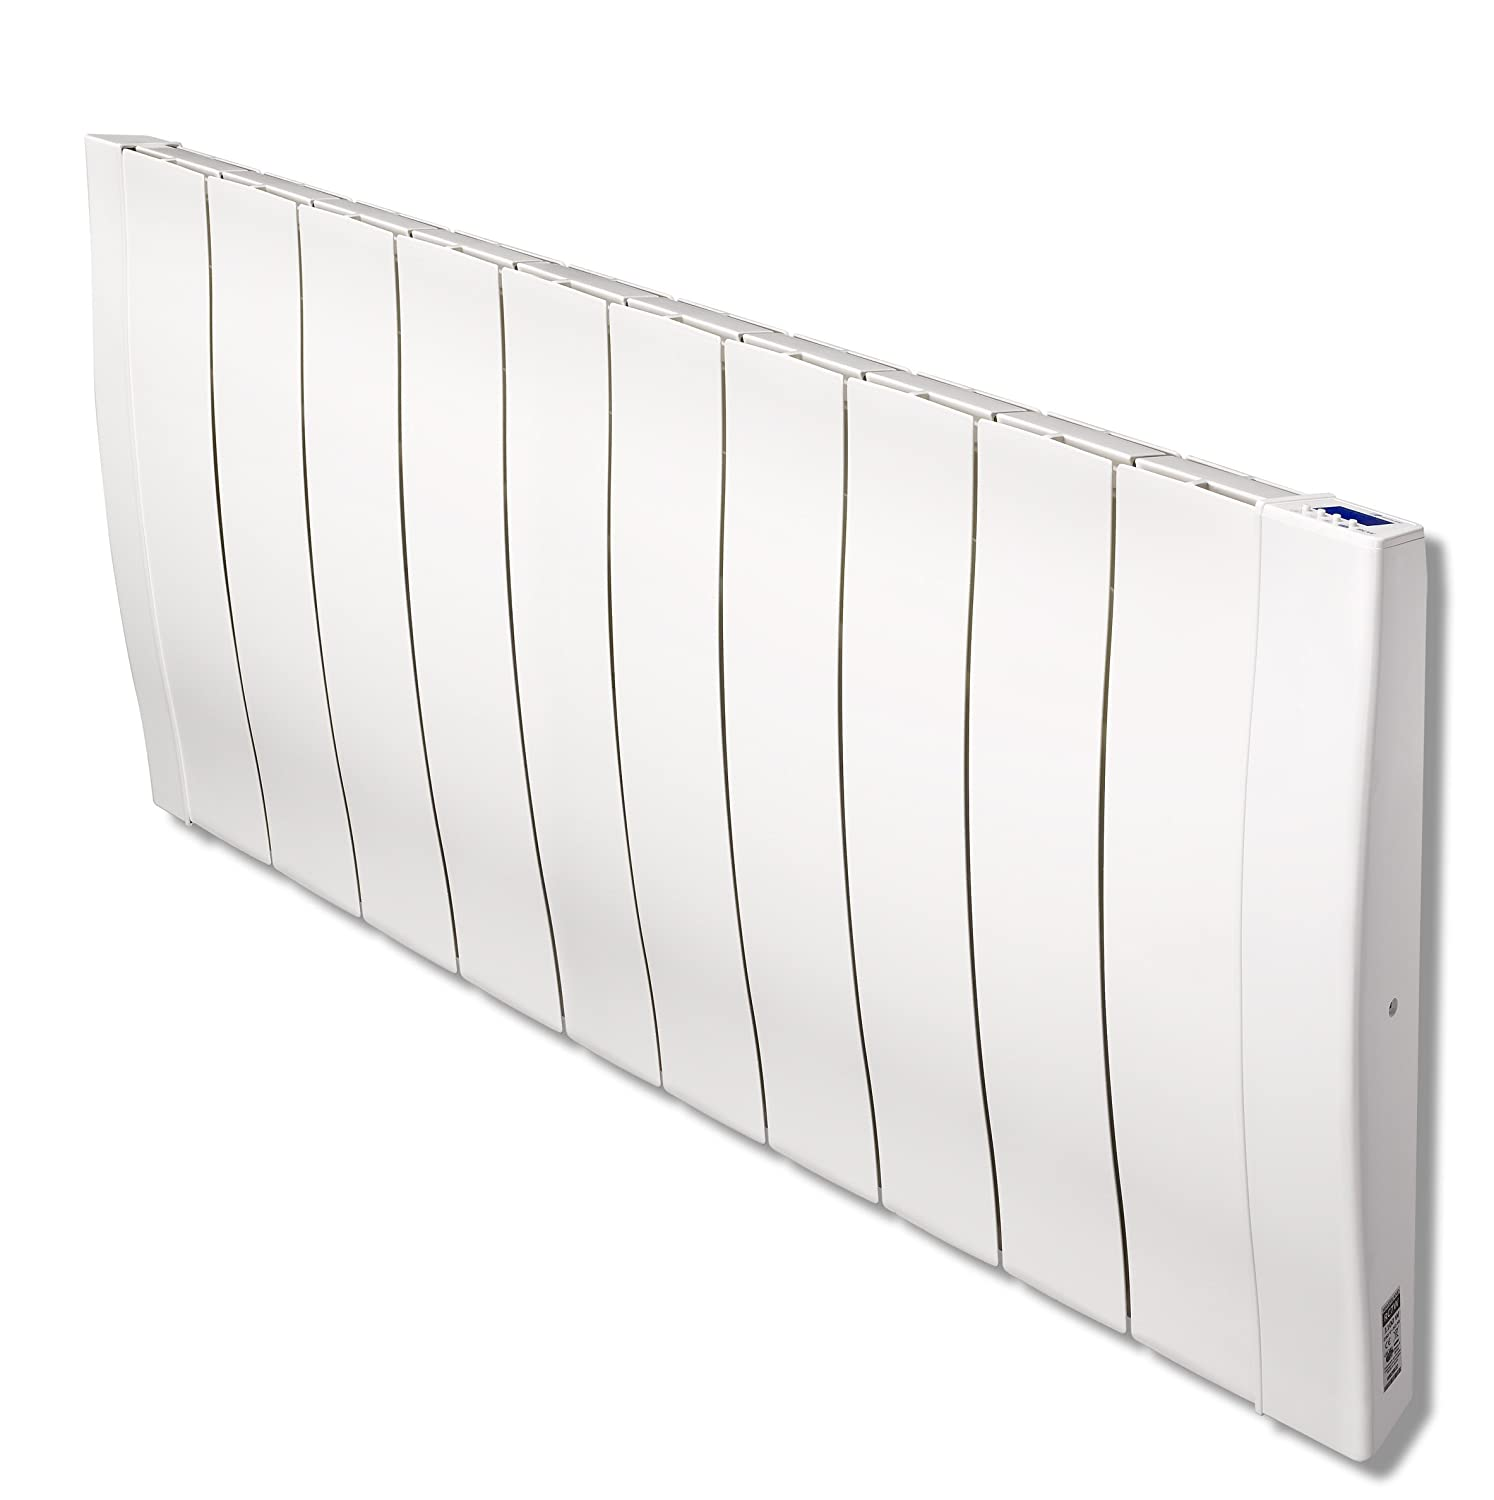 Slimline electric heaters wall mounted - Haverland Designer Rc Wave Rc11w 1700 Watt Slimline Energy Efficient Electric Radiators Wall Mounted With Timer And High Precision Thermostat Electric